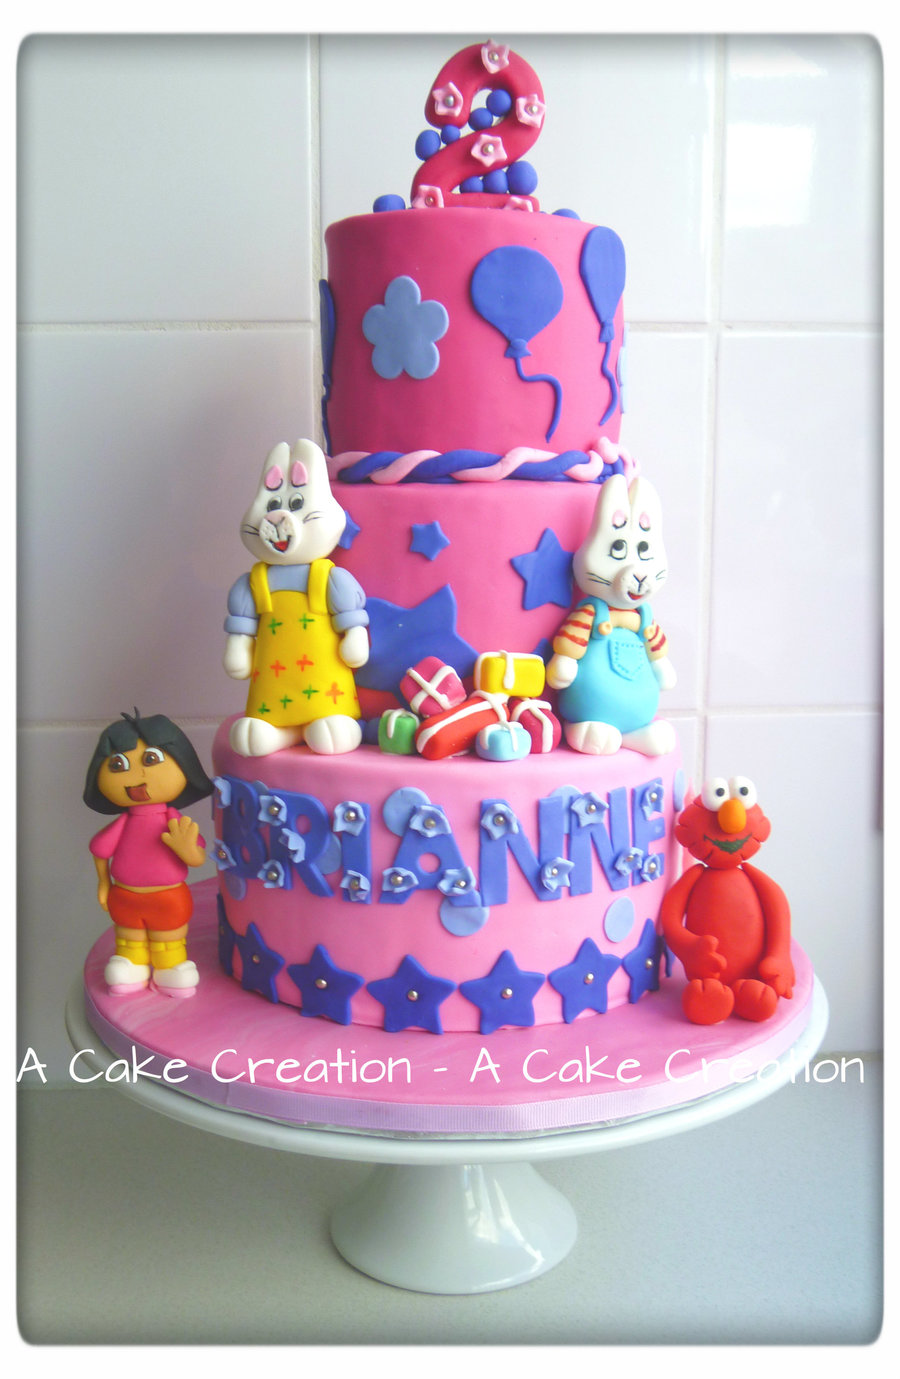 3 Tier Rainbow Cake Buttercream Filled Ganached Iced Pink Fondant Covering All Edible Handmade Characters on Cake Central